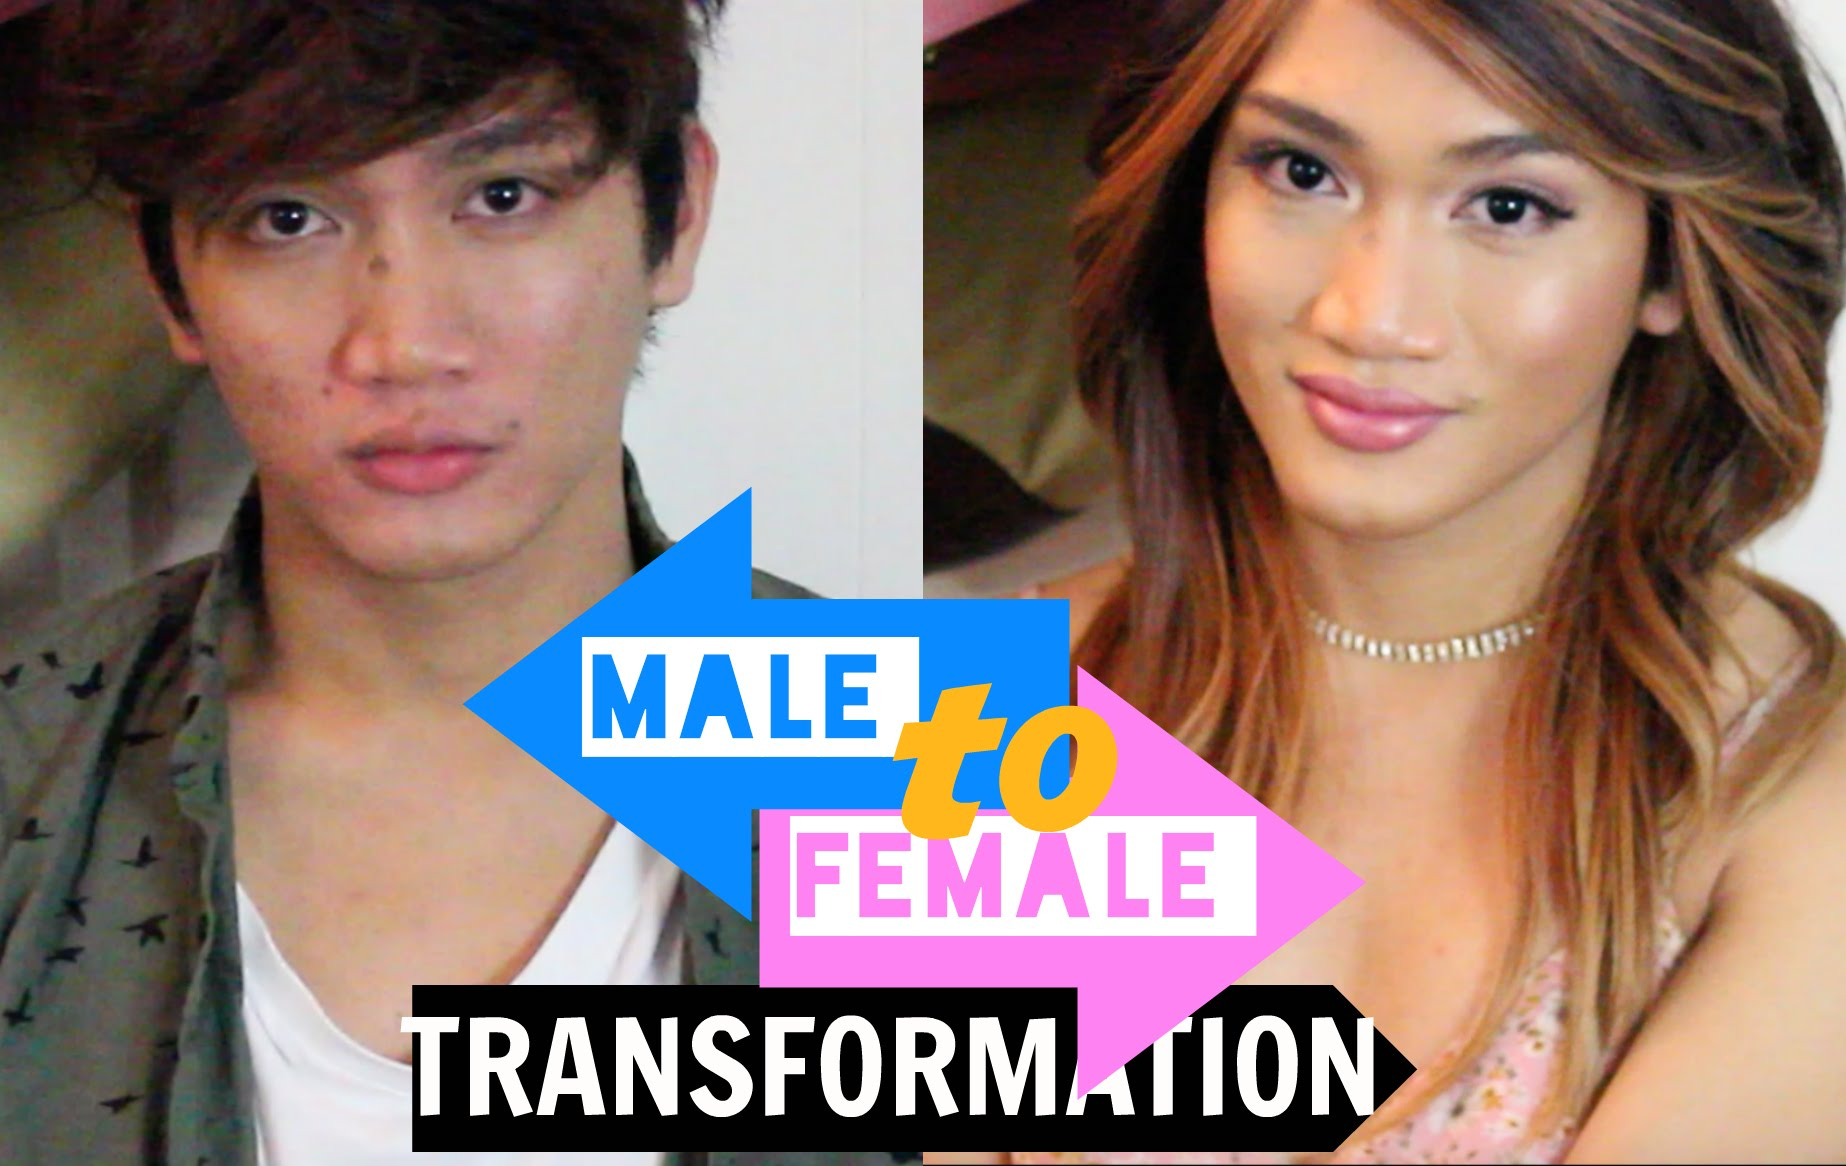 Male to female transformation fetish